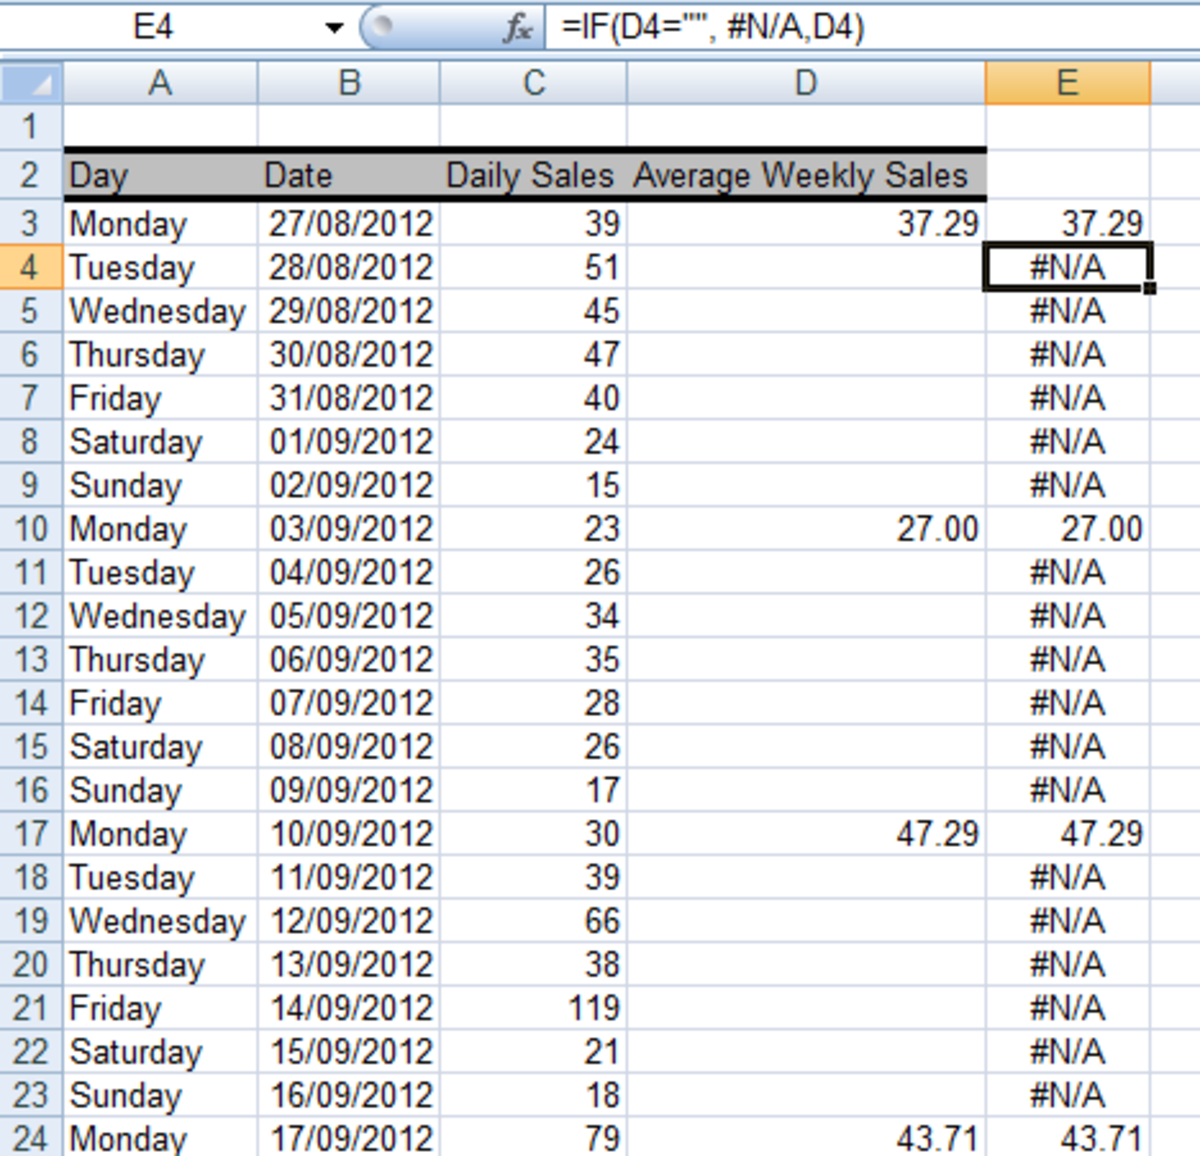 Ediblewildsus  Winsome How To Get Excel  And  To Ignore Empty Cells In A Chart Or  With Extraordinary Using The If Function In A Formula To Convert Empty Cells To Na With Astounding Excel Vlookup True Also Sql Insert From Excel In Addition How To Use Excel  And Excel Tool Box Review As Well As Mortgage Payment Formula In Excel Additionally Excel Editor Online From Turbofuturecom With Ediblewildsus  Extraordinary How To Get Excel  And  To Ignore Empty Cells In A Chart Or  With Astounding Using The If Function In A Formula To Convert Empty Cells To Na And Winsome Excel Vlookup True Also Sql Insert From Excel In Addition How To Use Excel  From Turbofuturecom